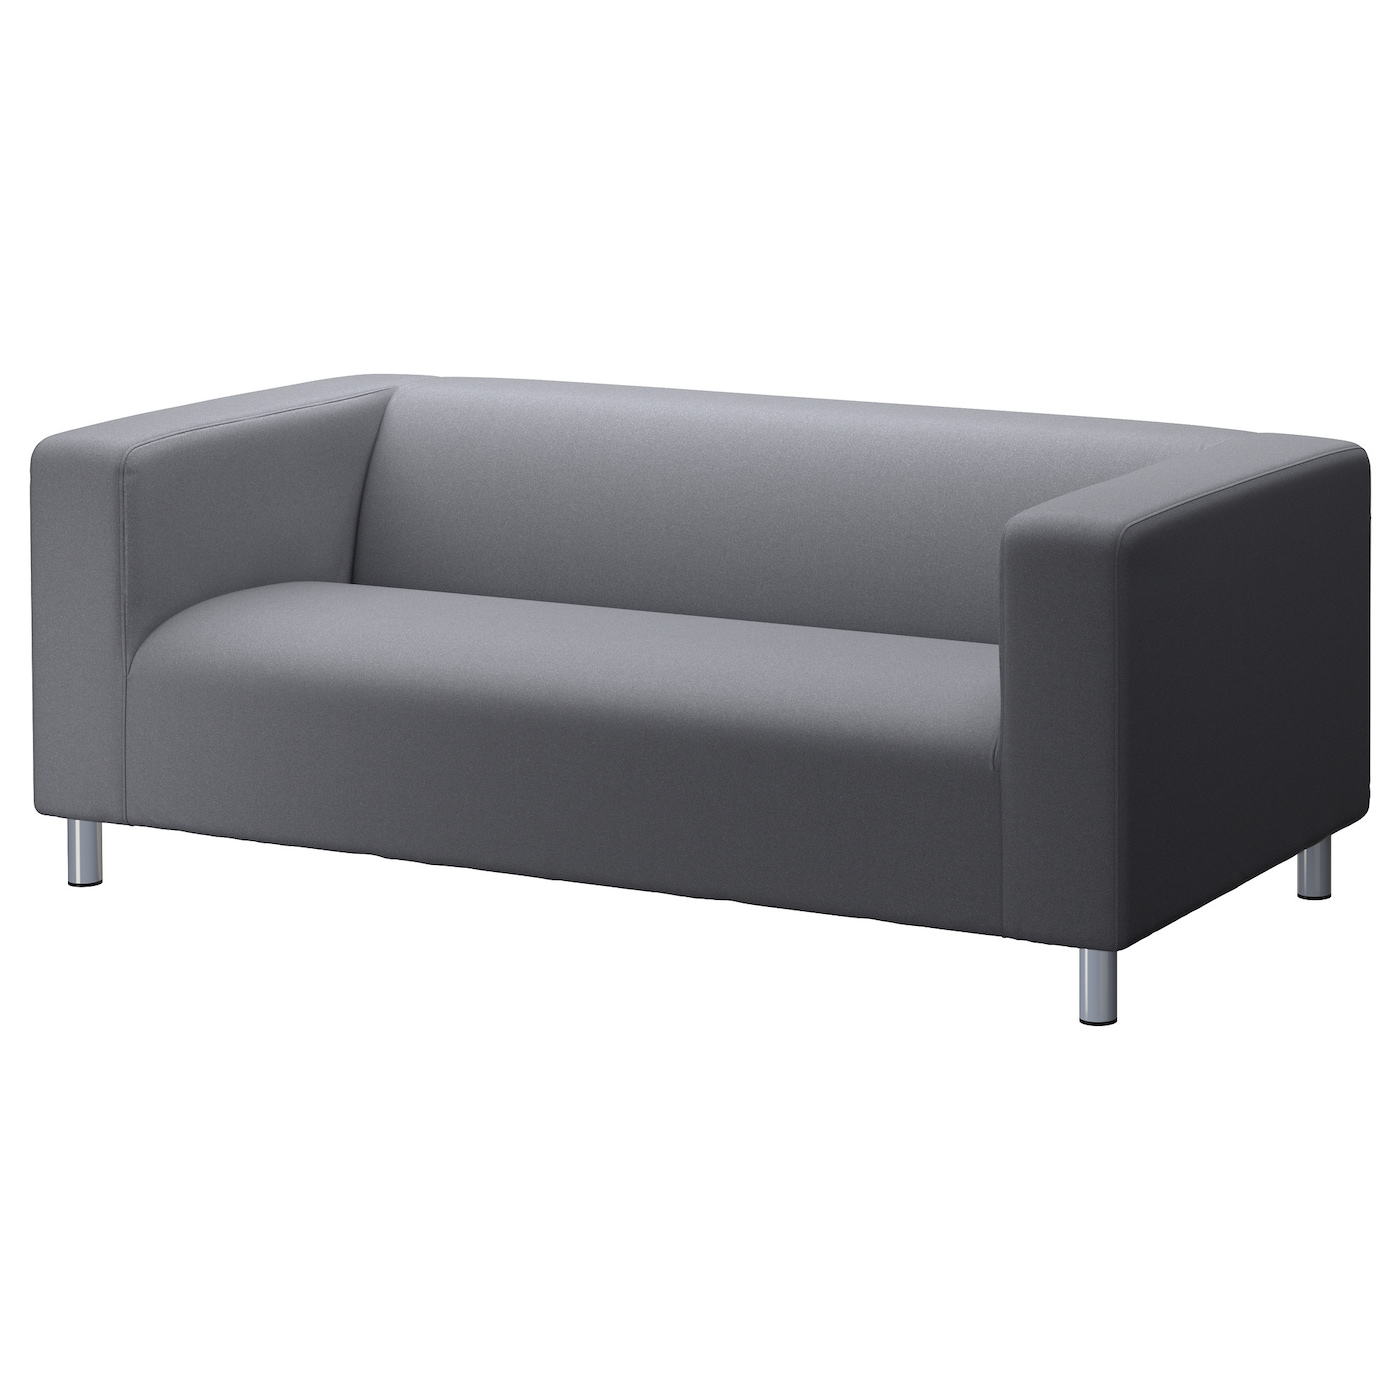 klippan cover two seat sofa flackarp grey ikea. Black Bedroom Furniture Sets. Home Design Ideas